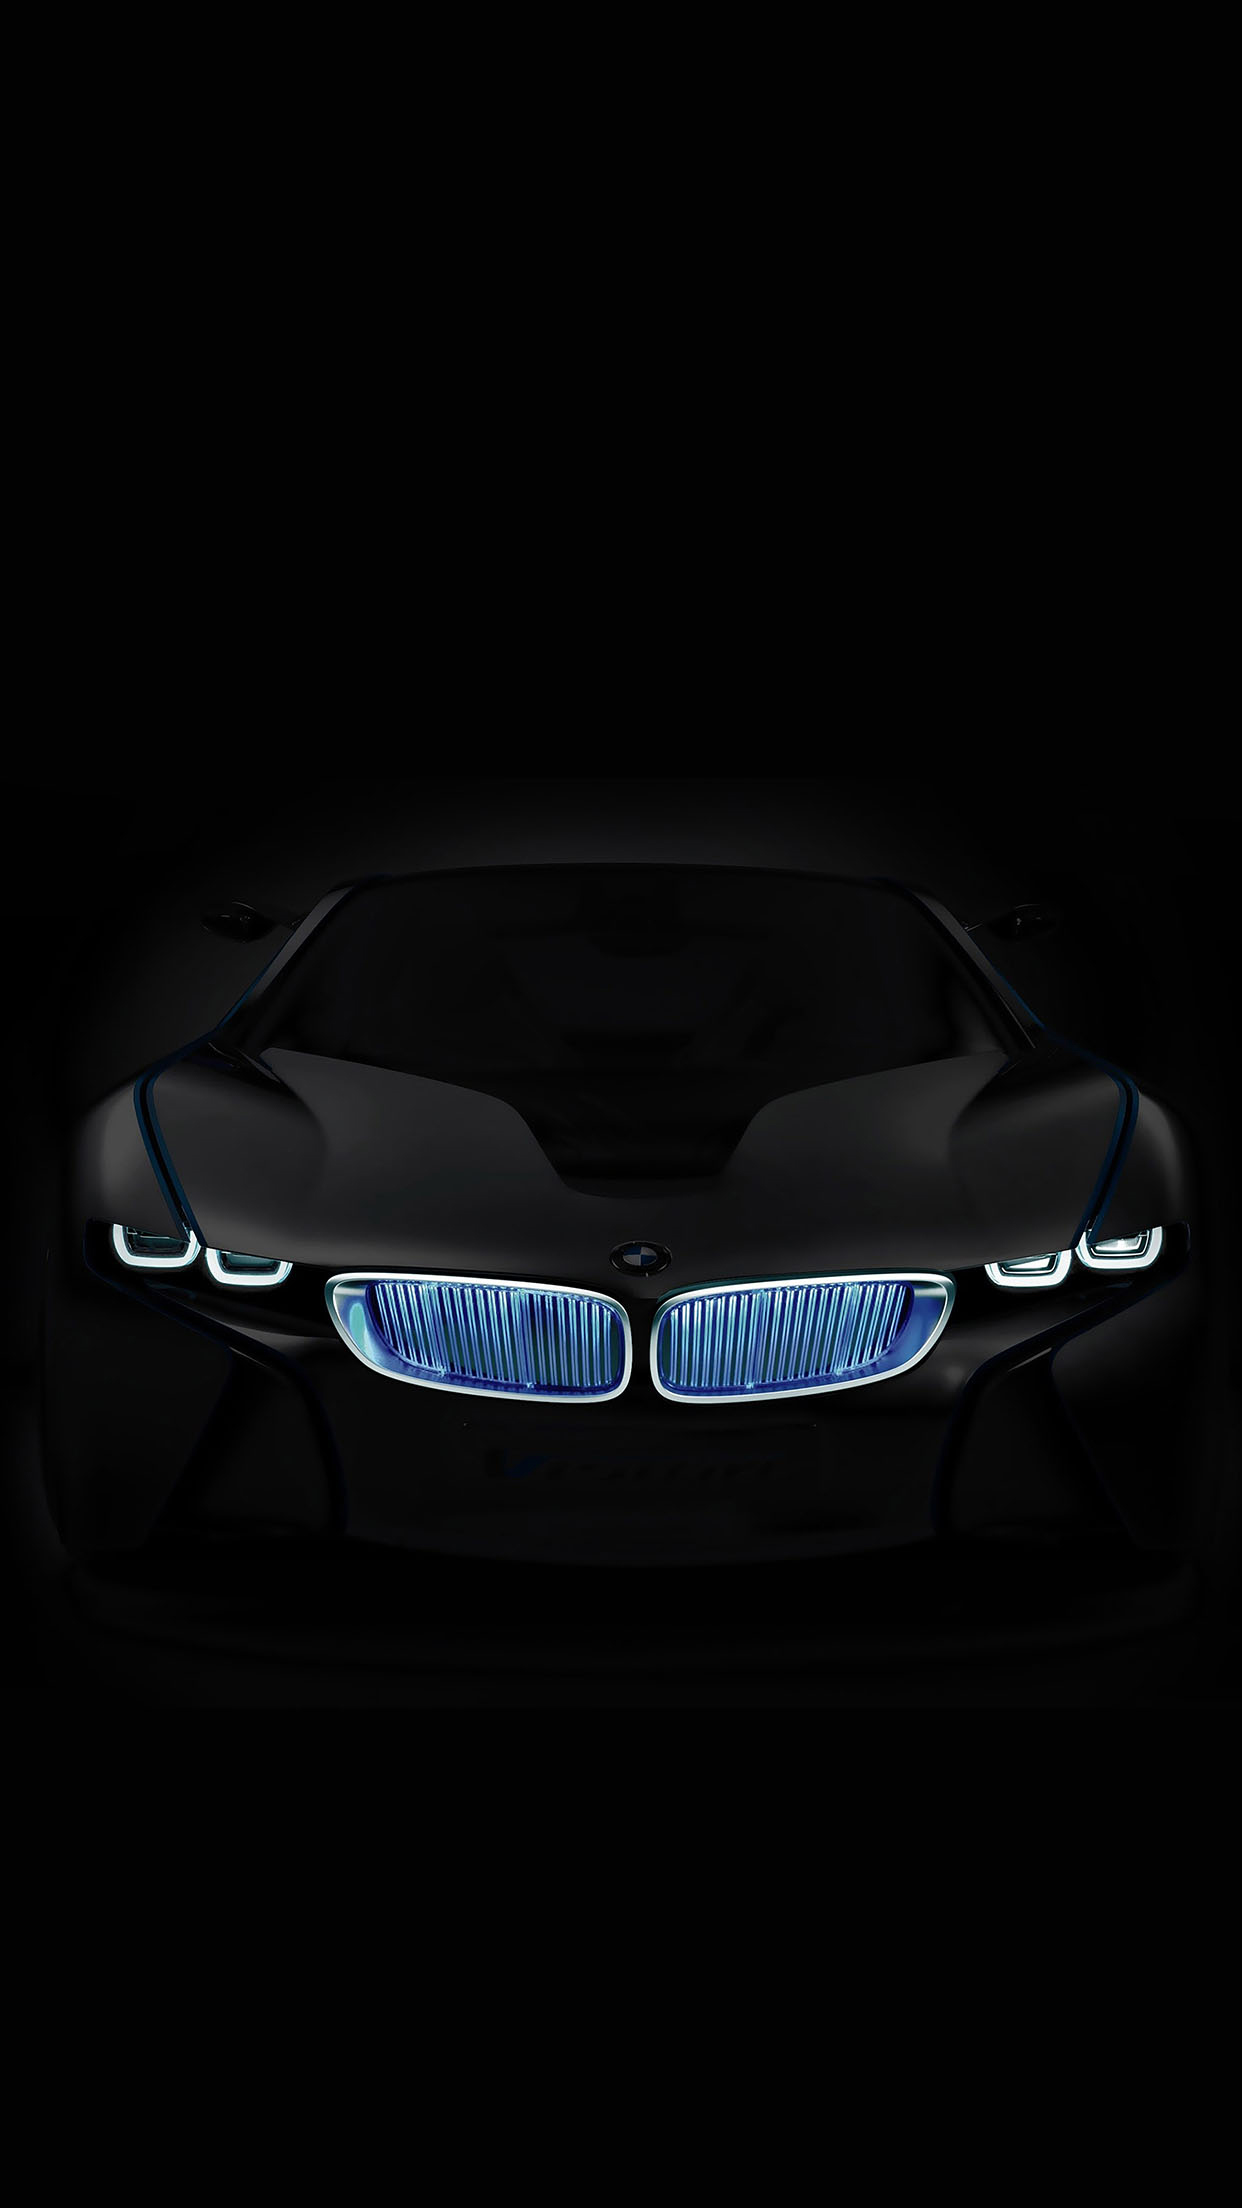 BMW In The Dark Android Wallpaper download 1242x2208